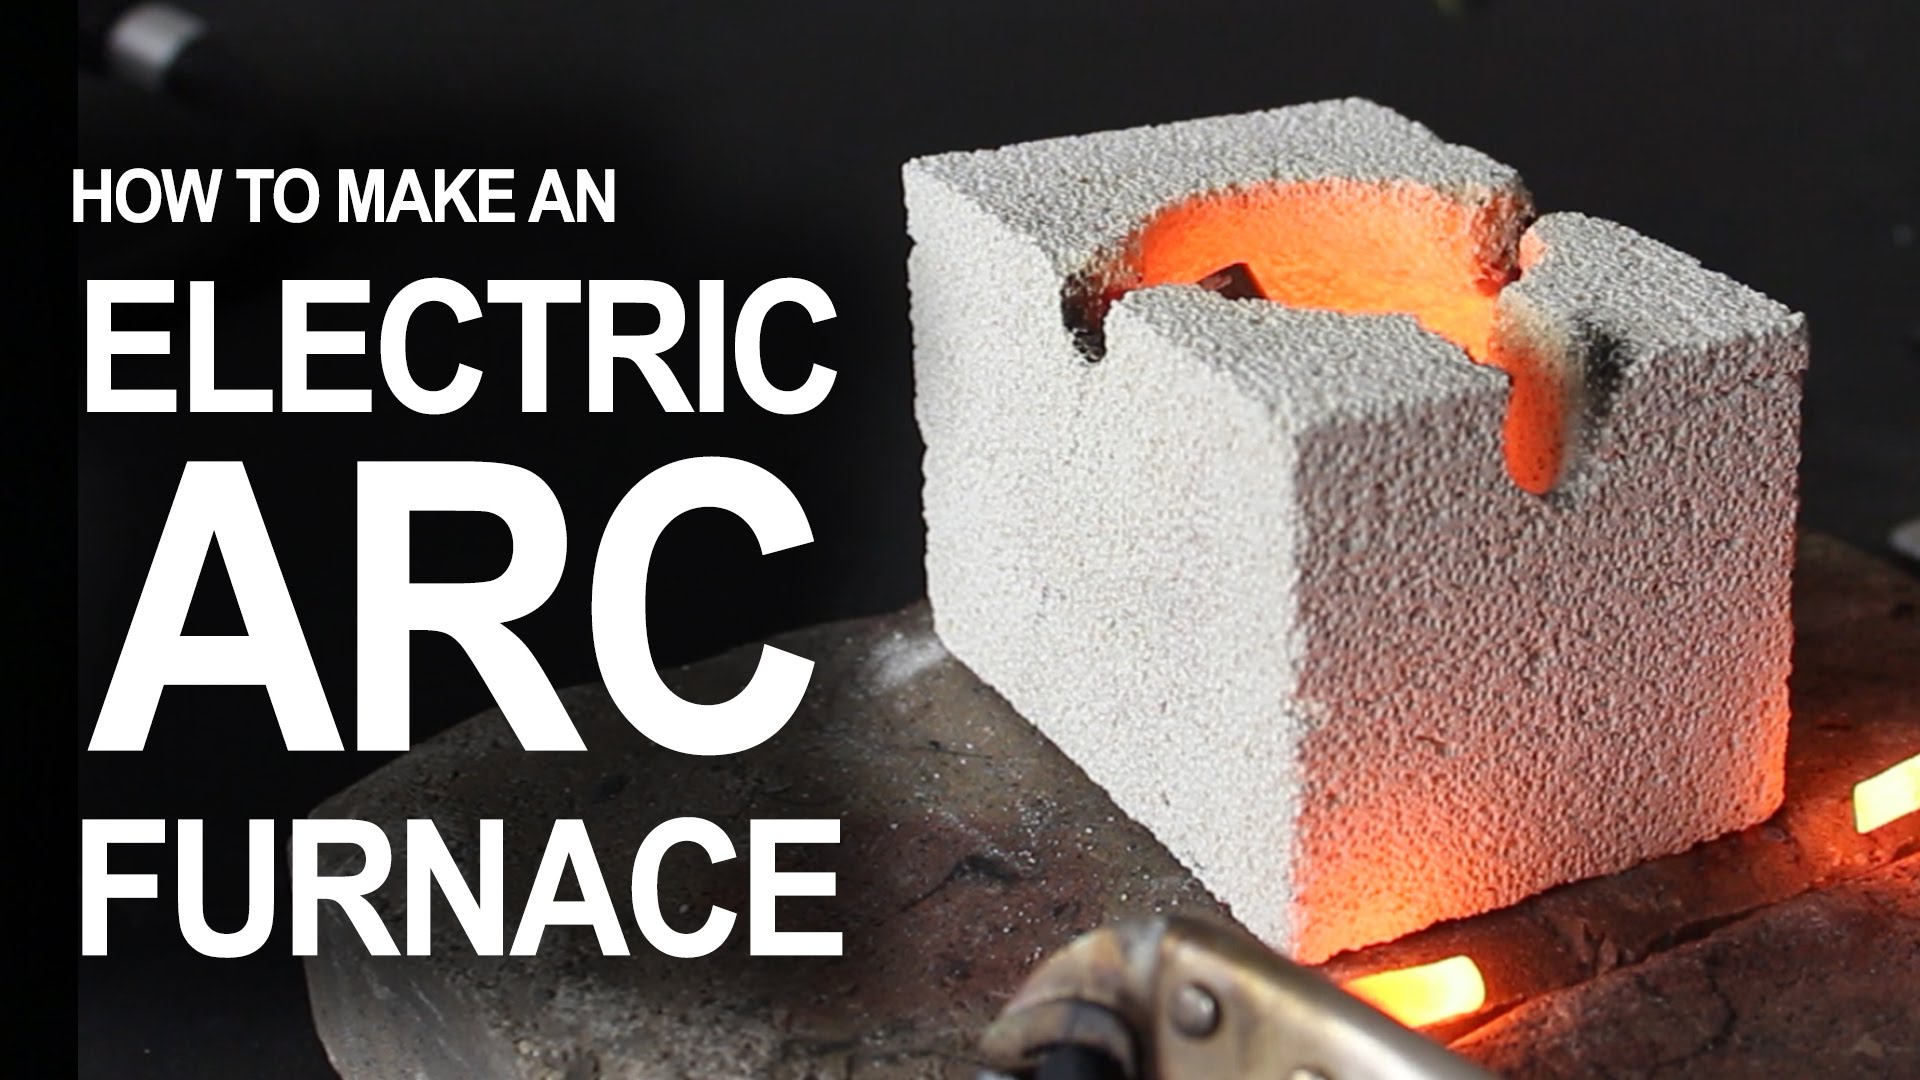 Detailed Instructions For Creating An Electric Arc Furnace